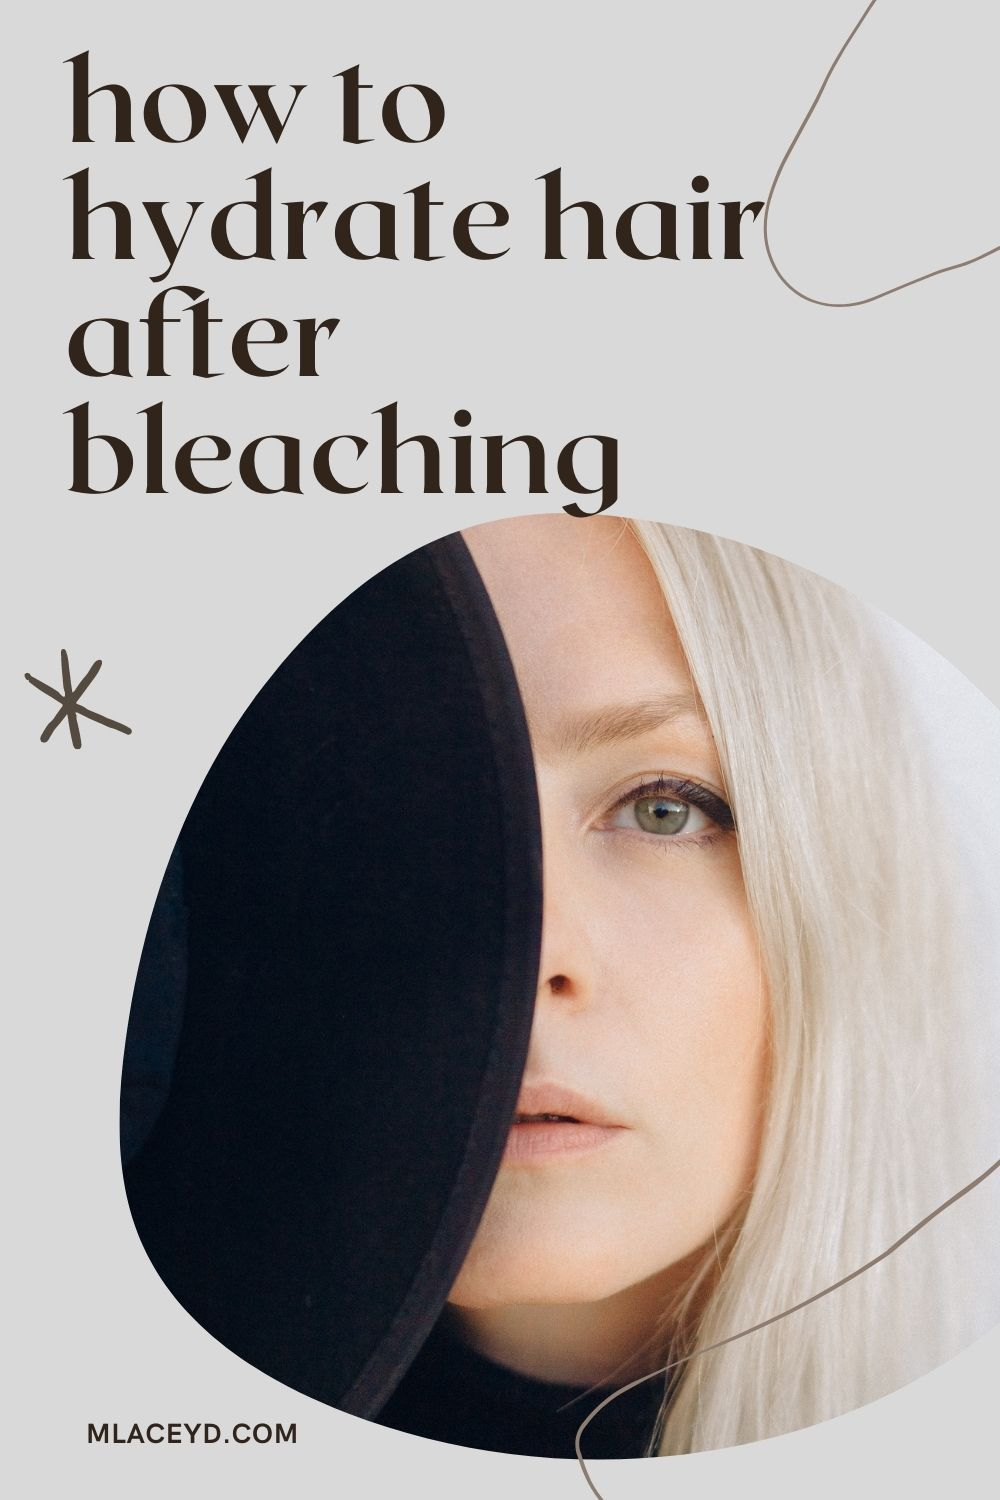 How to hydrate hair after bleaching